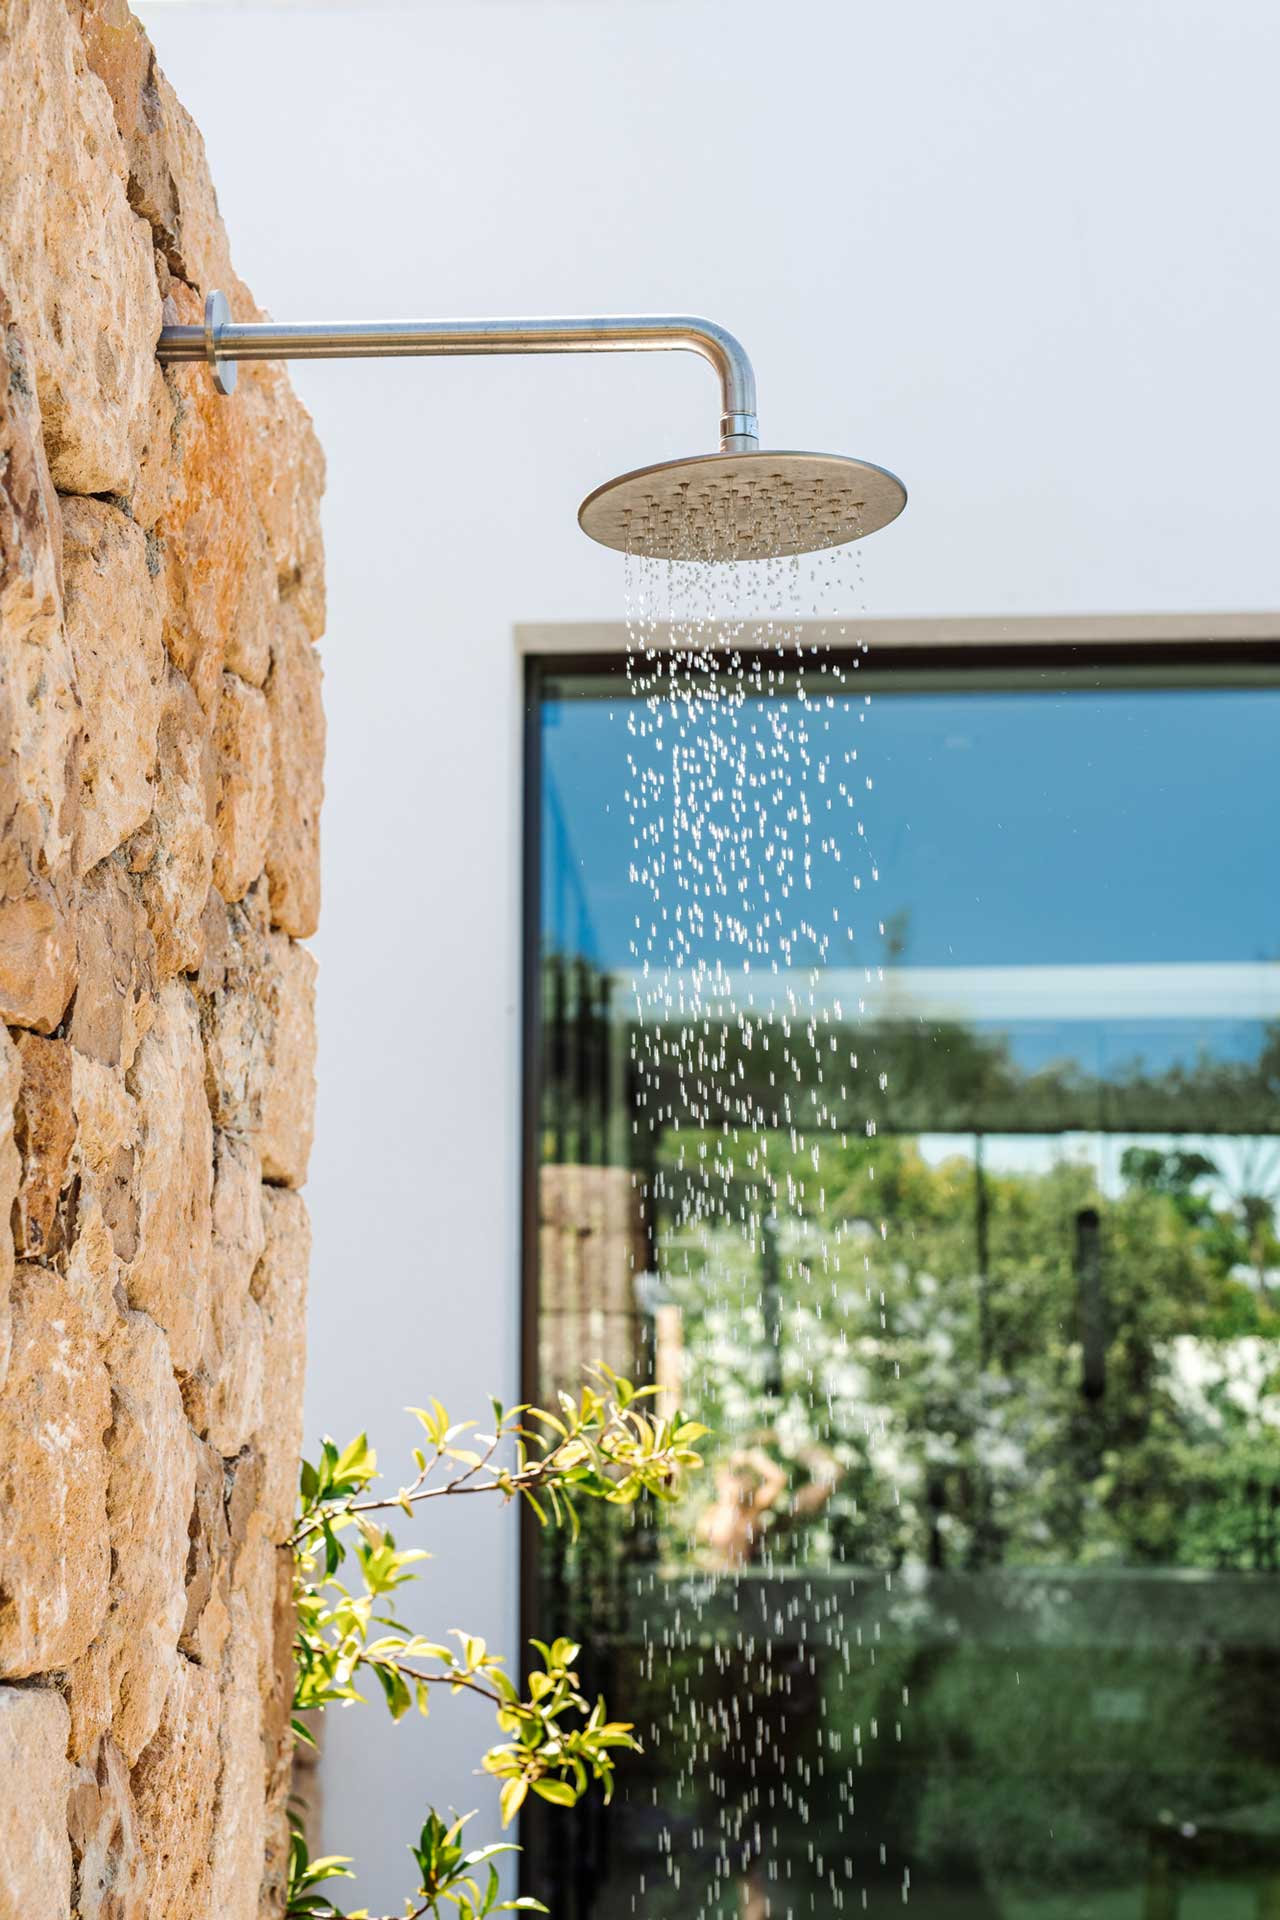 outdoor shower against stone exterior wall